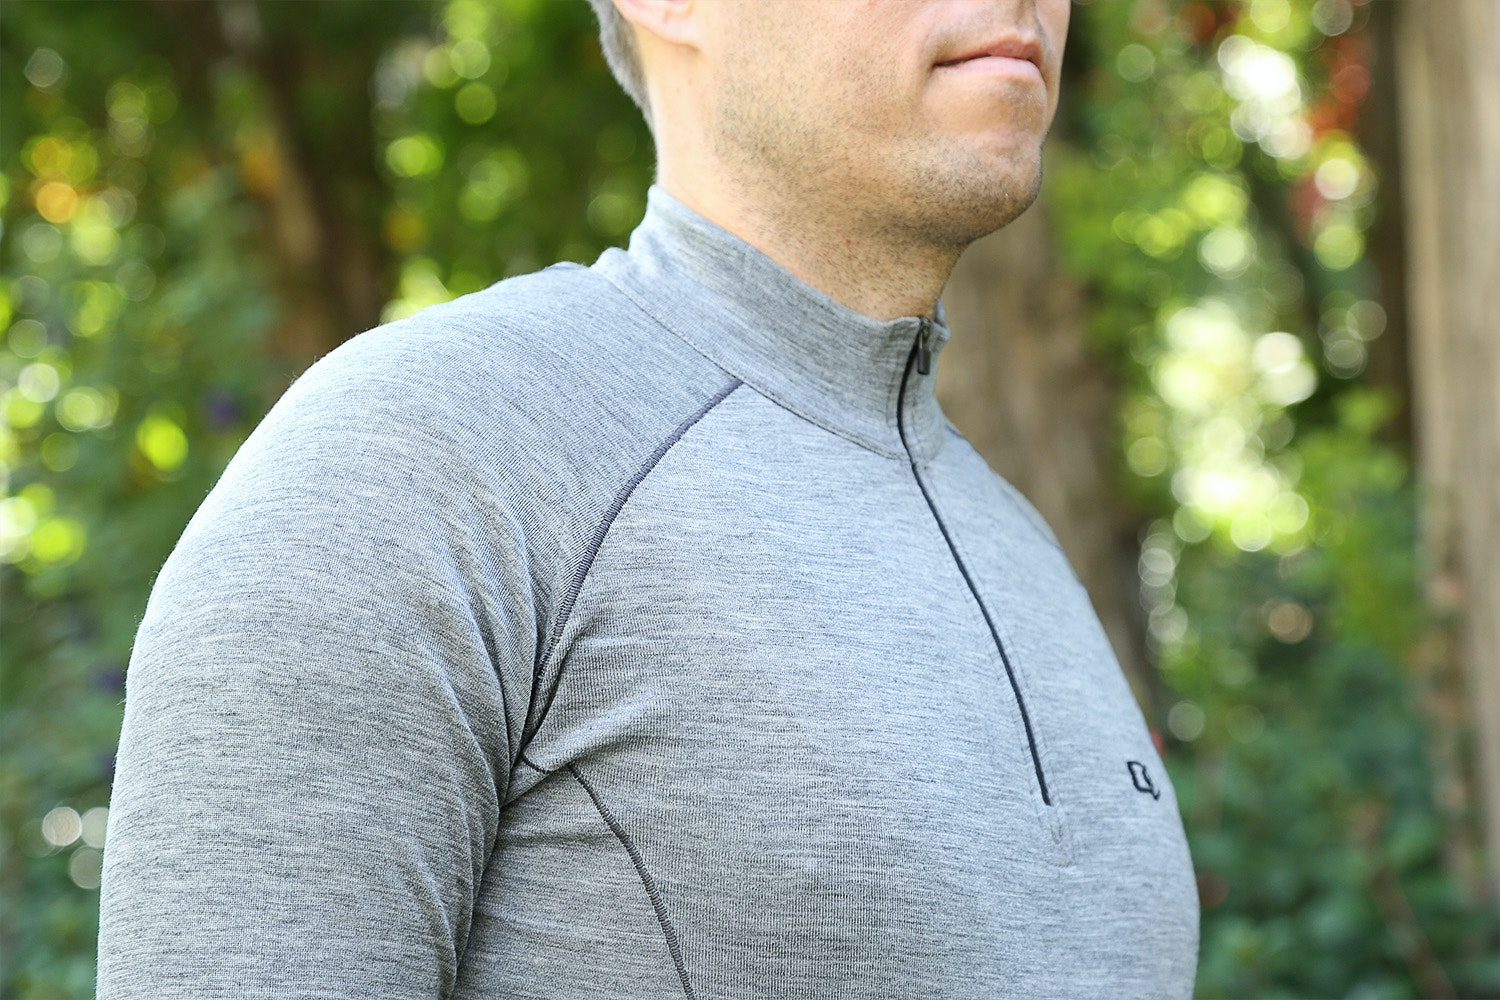 WoolPRO Scout or Agena Merino Shirts